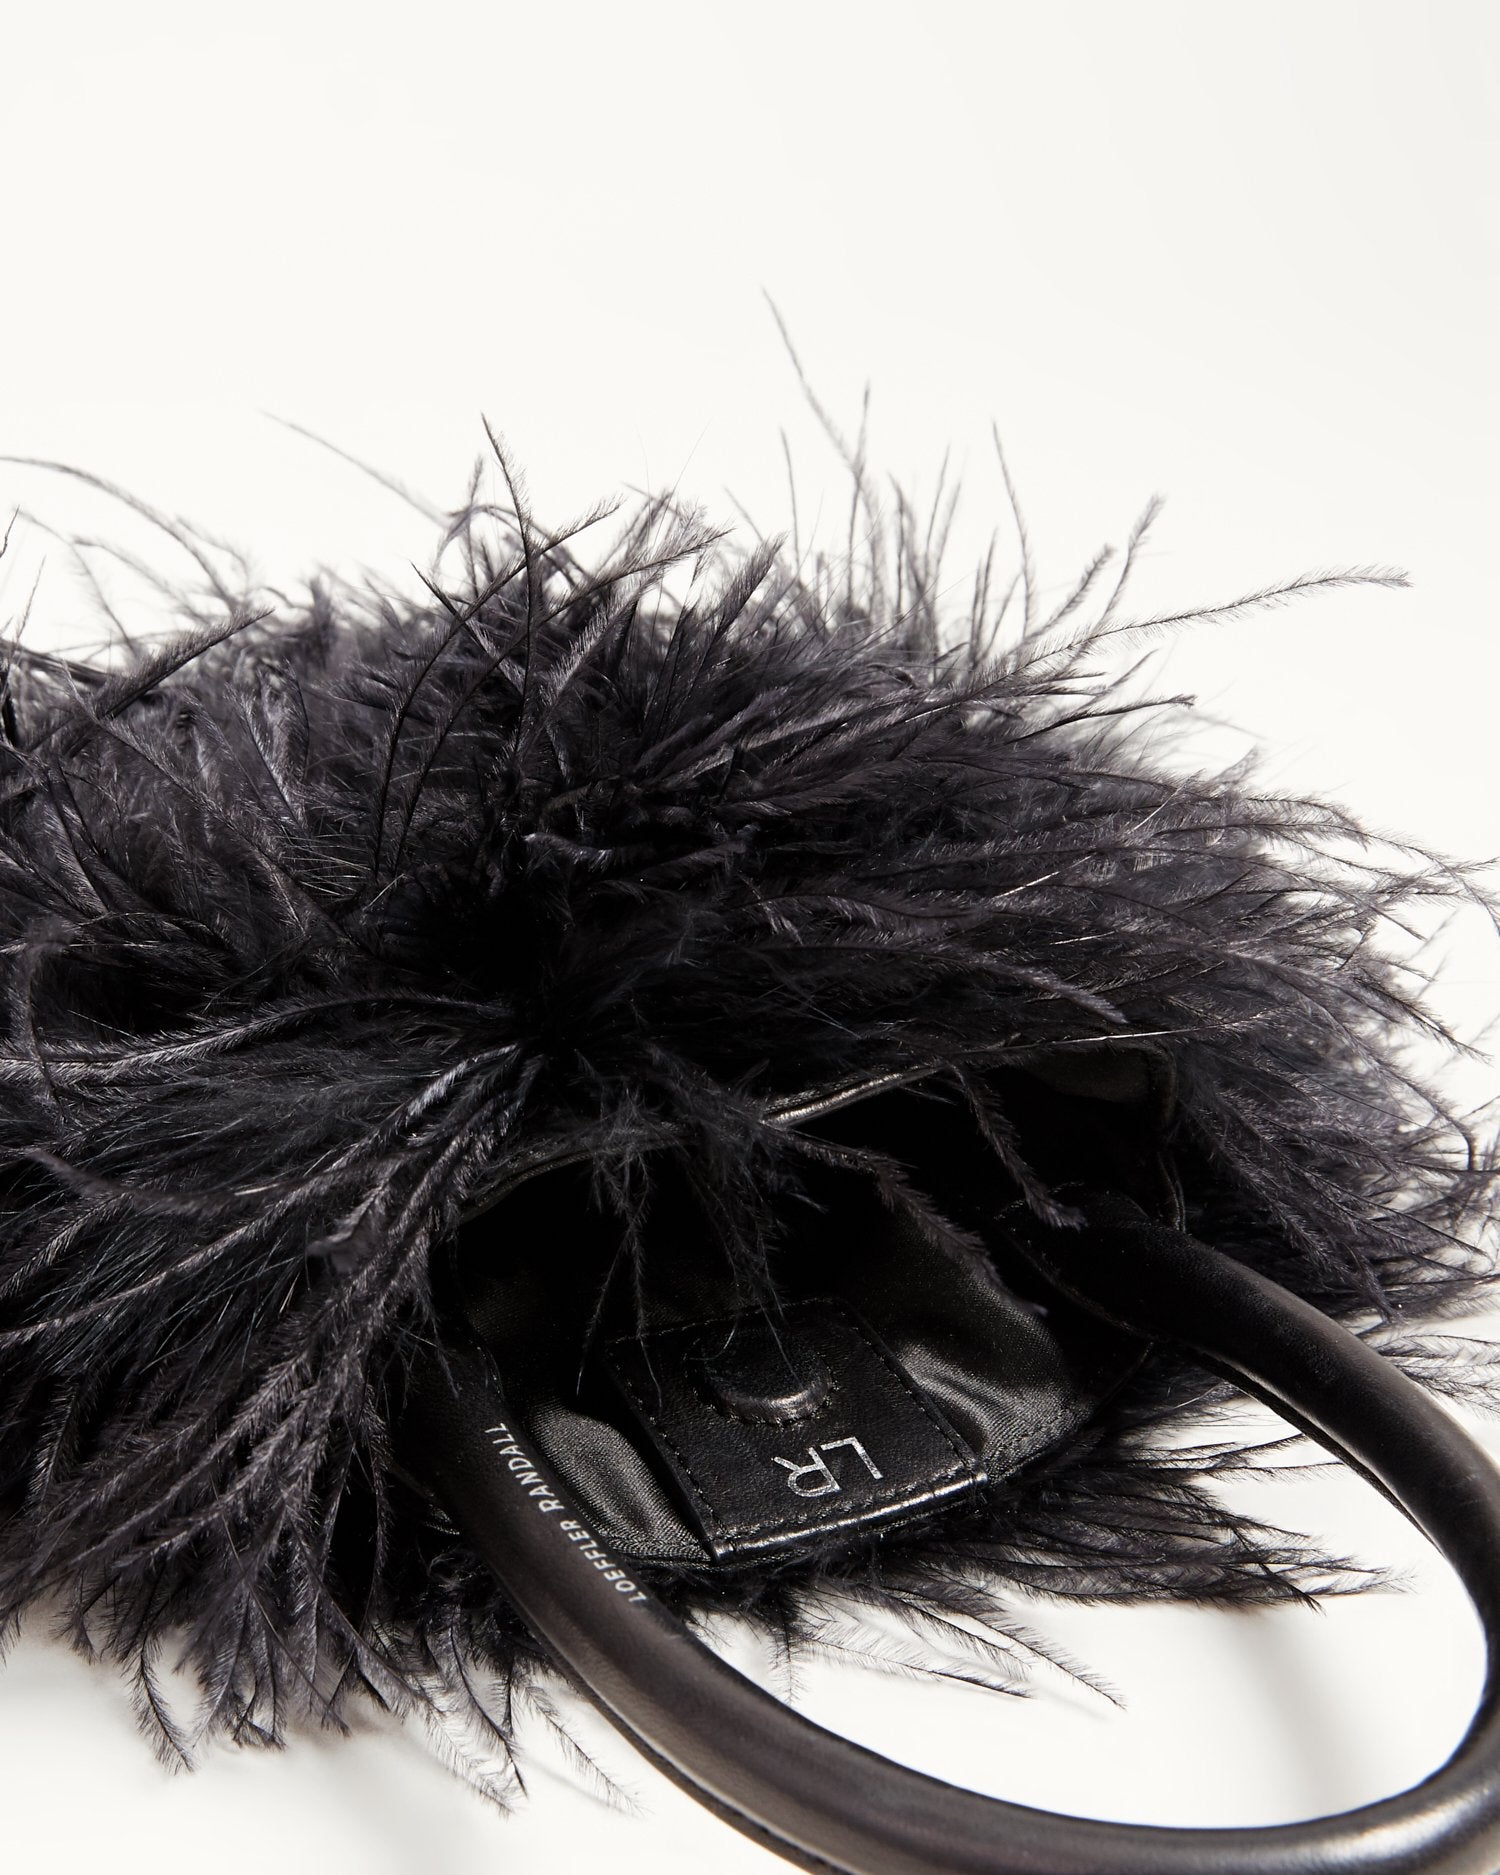 Color: Black feathers; Color: Black feathers